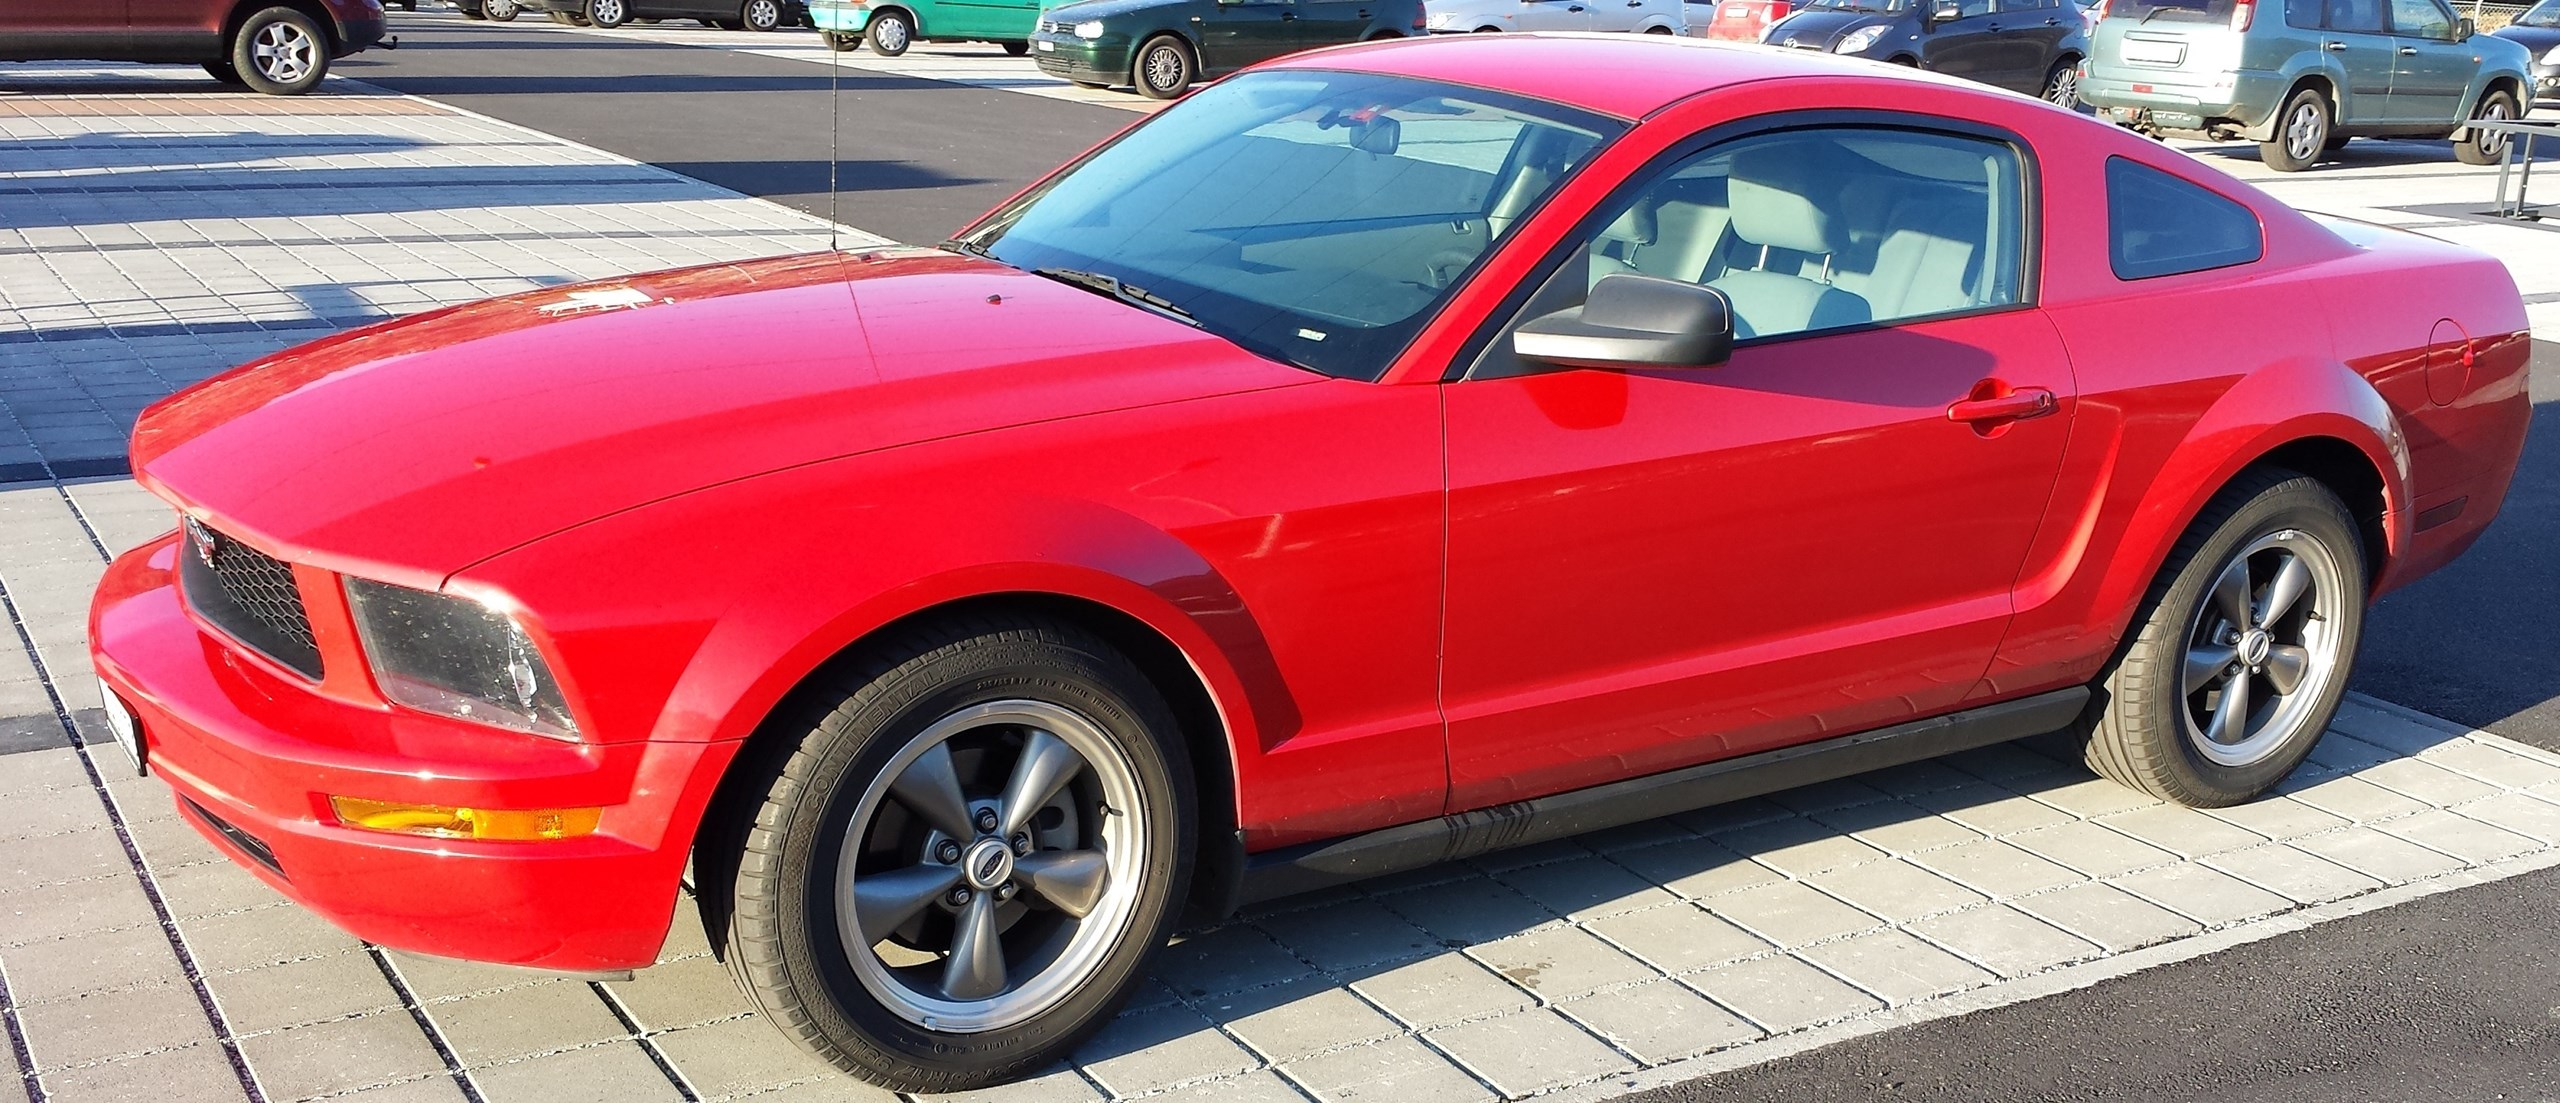 Ford (USA) Mustang Coupé 4.0 V6